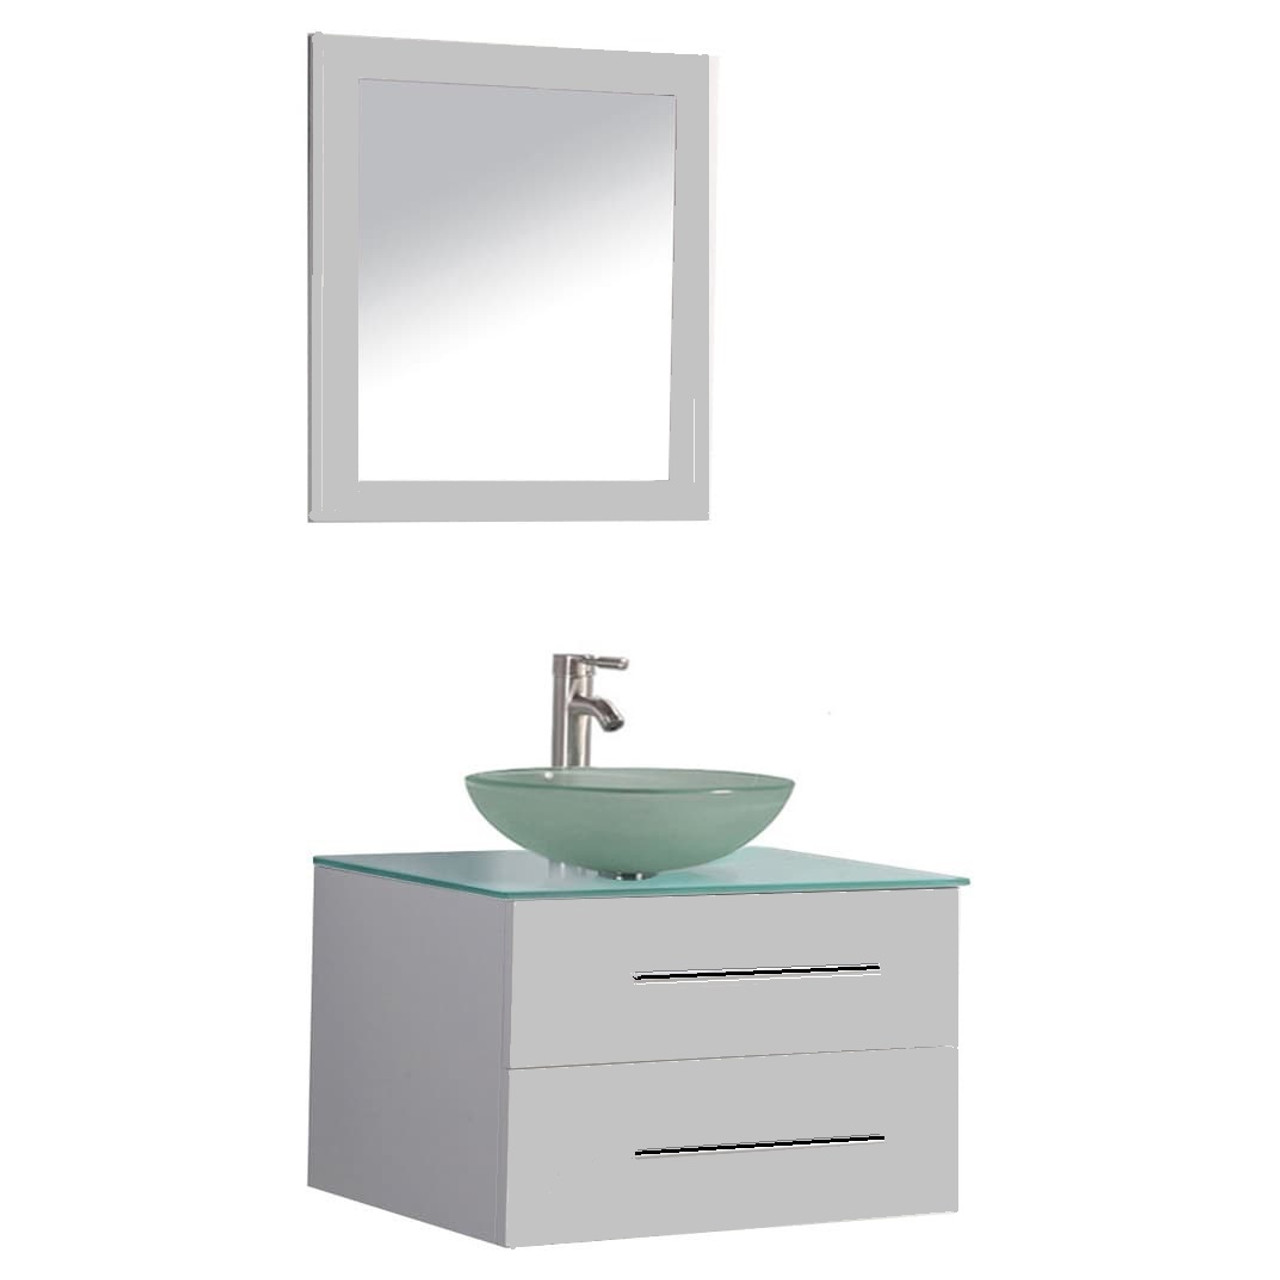 Lorixon Lv 10 30 24 Gray Modern Floating Bathroom Vanity Wall